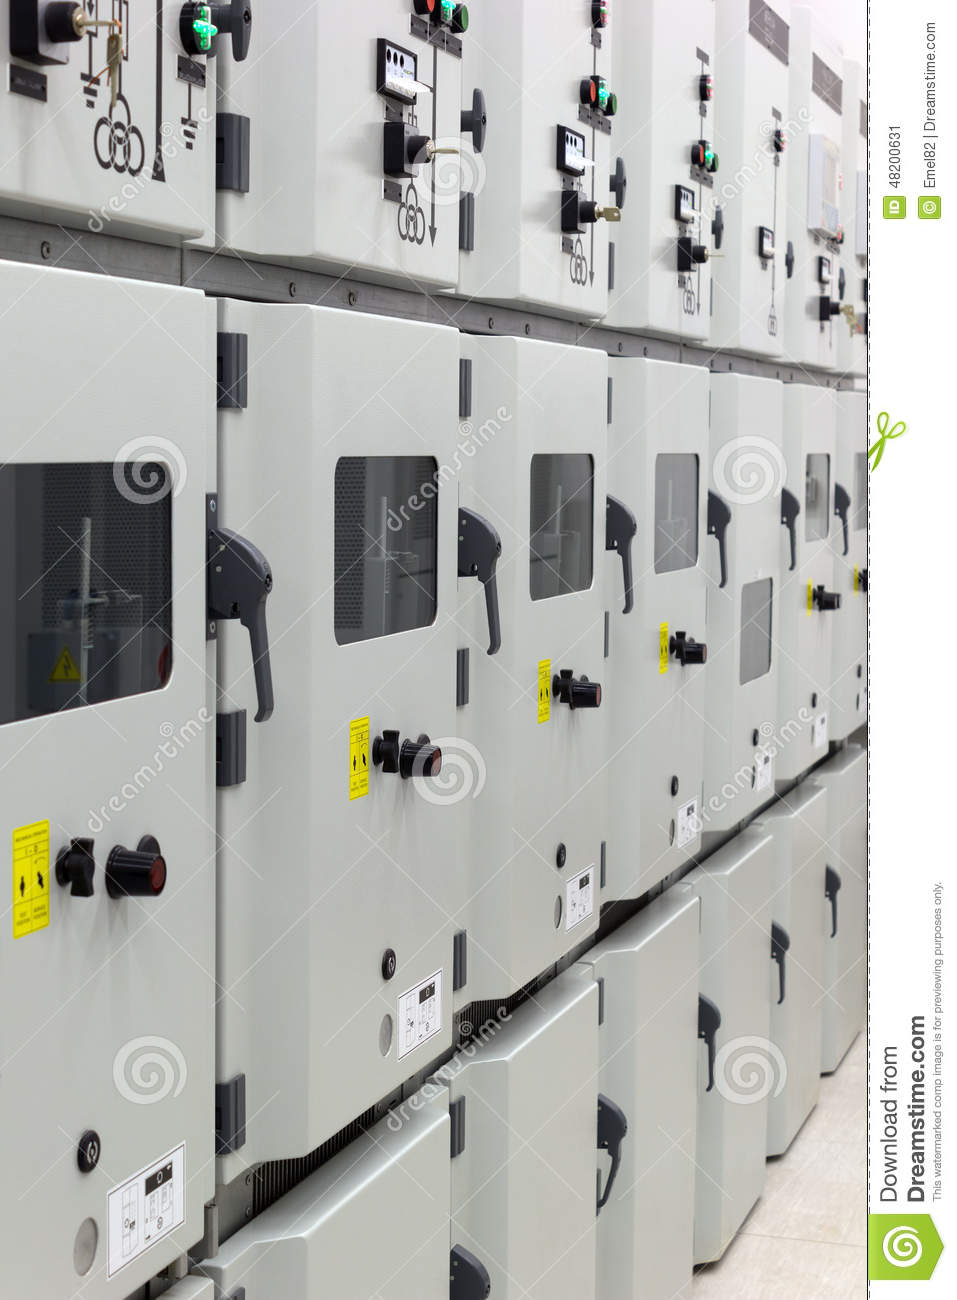 Electrical energy distribution substation stock image for Distribution substation